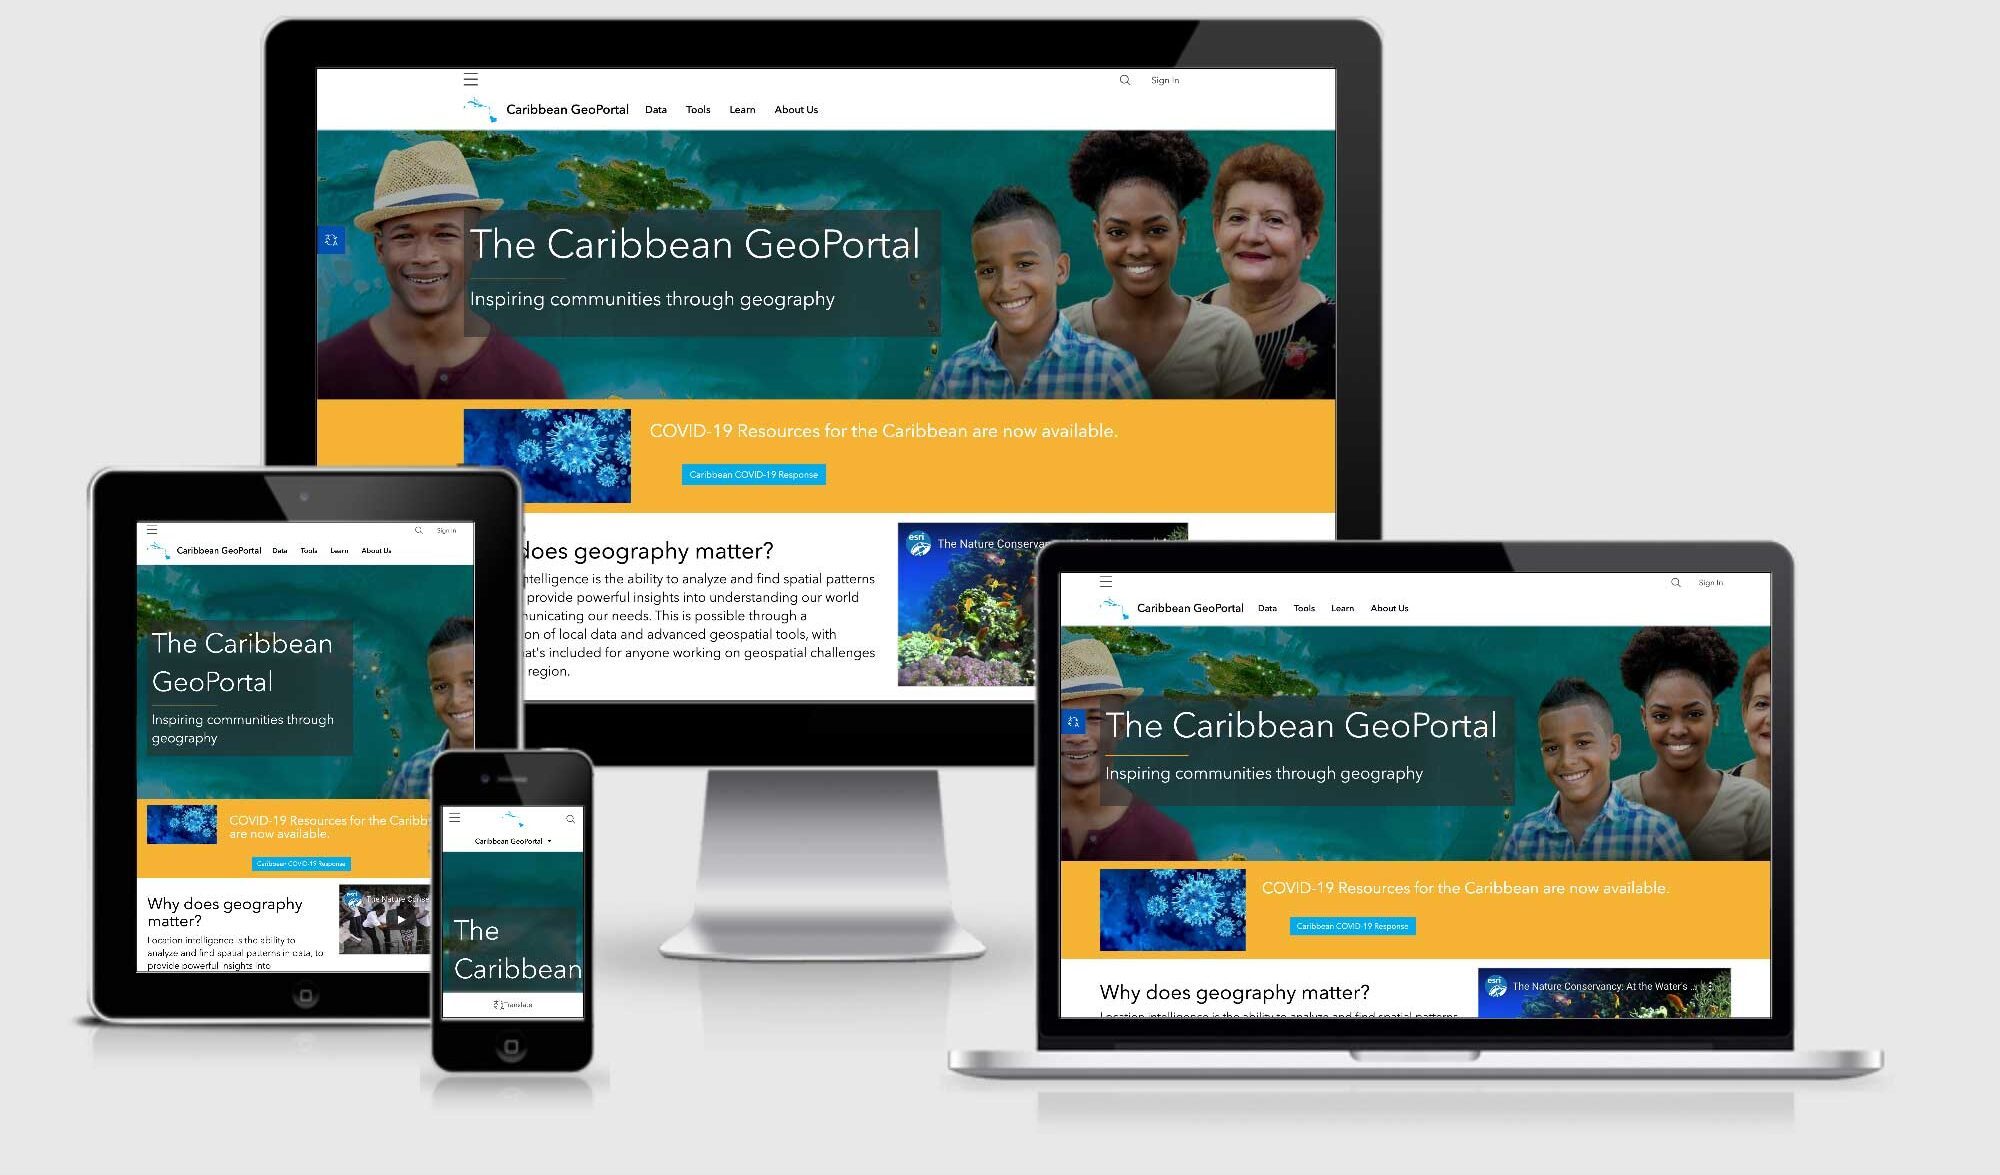 Collection of responsive displays of The Caribbean GeoPortal